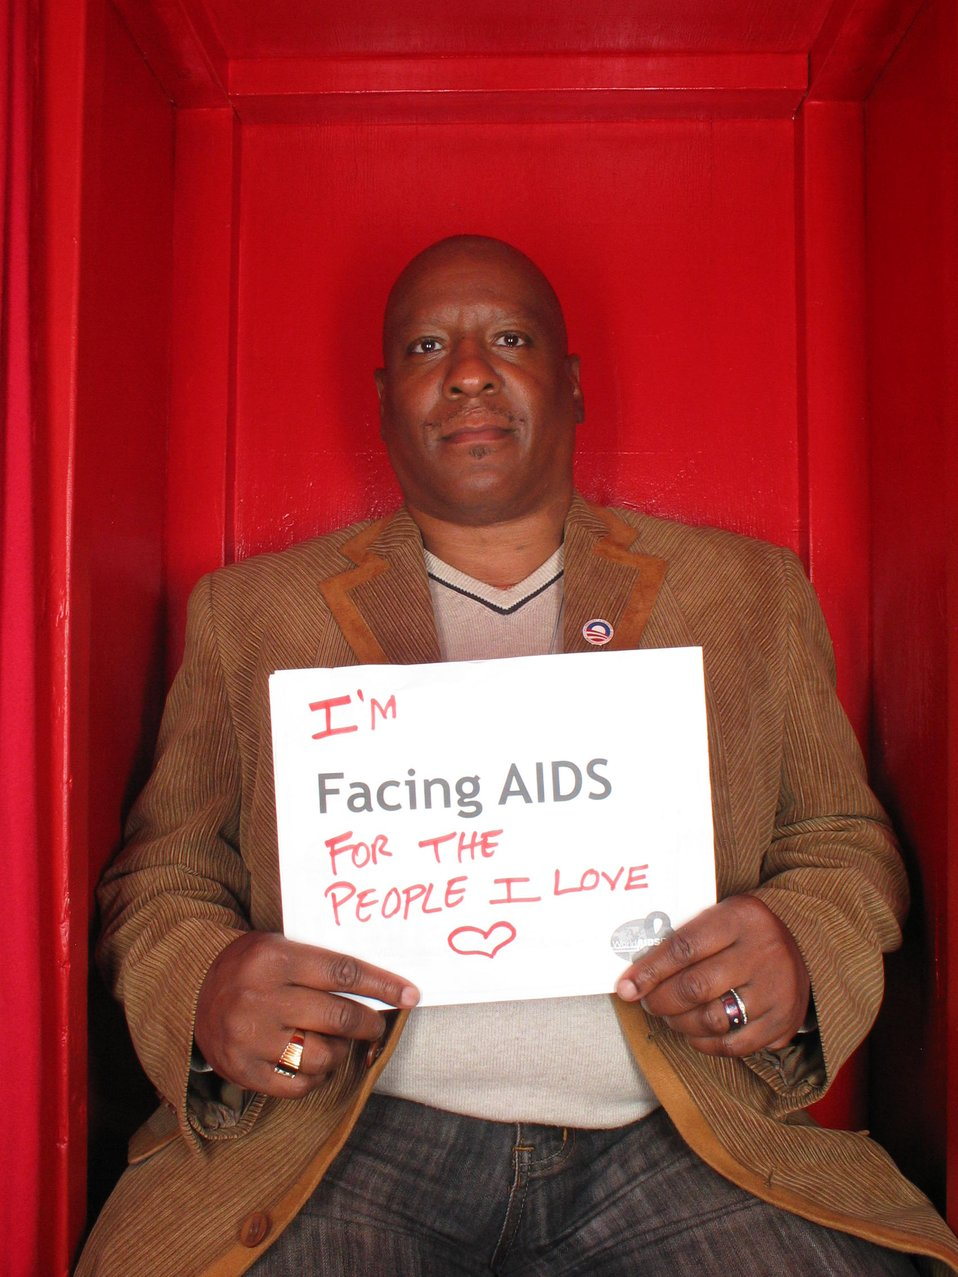 I'm Facing AIDS for the people I love.